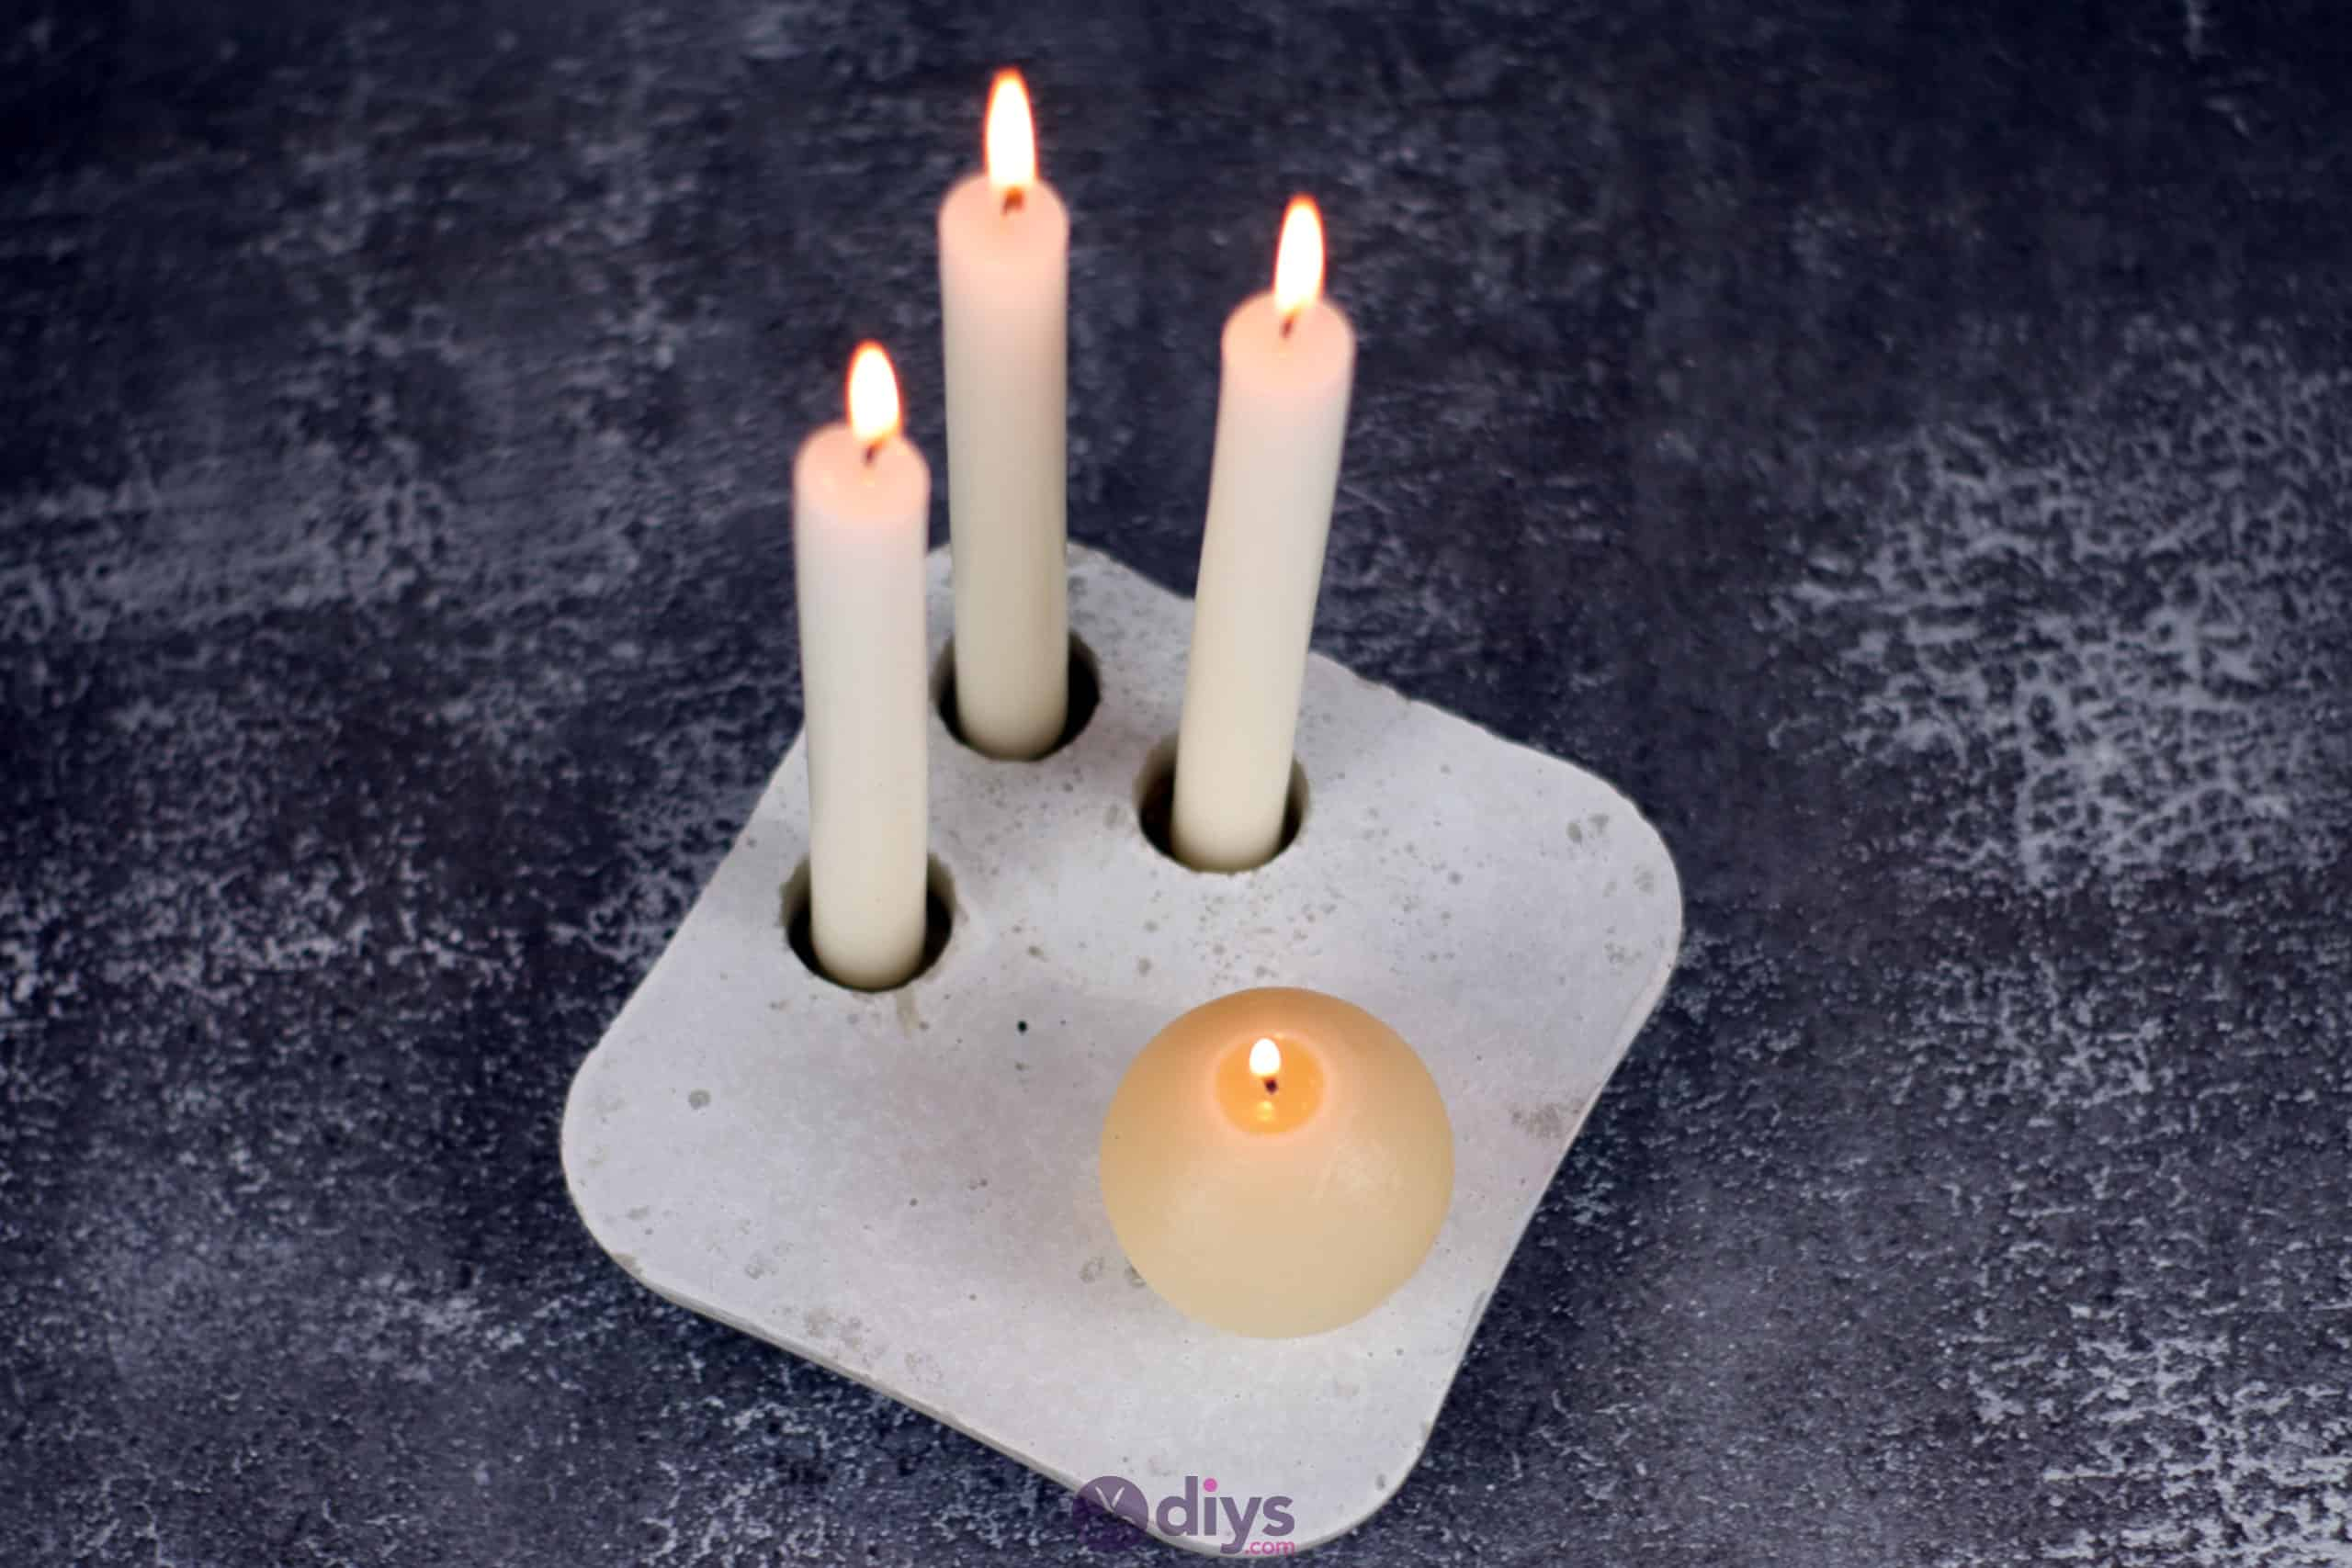 Diy concrete candle holder plate project